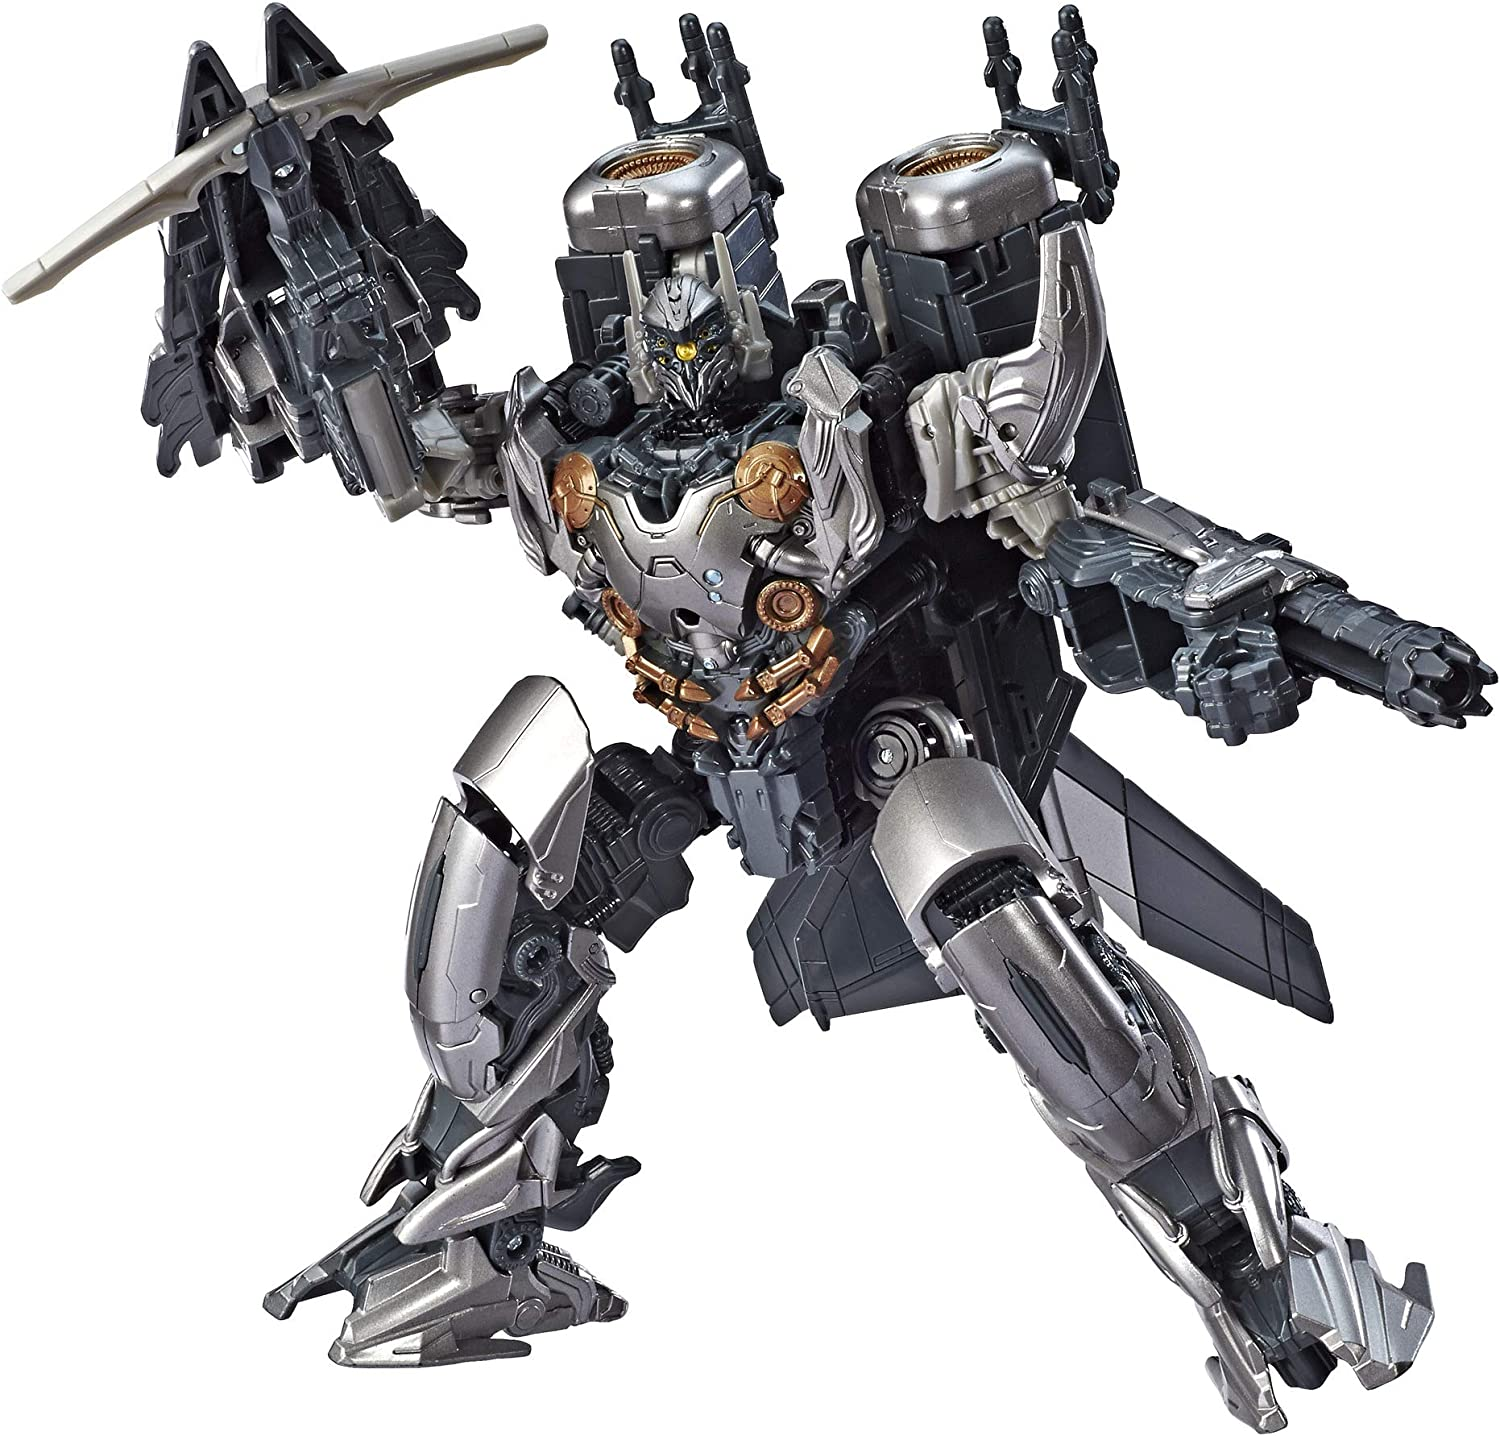 NEW ACTION FIGURE Transformers 3 Voyager Leader Class Optimus Prime justice 2018